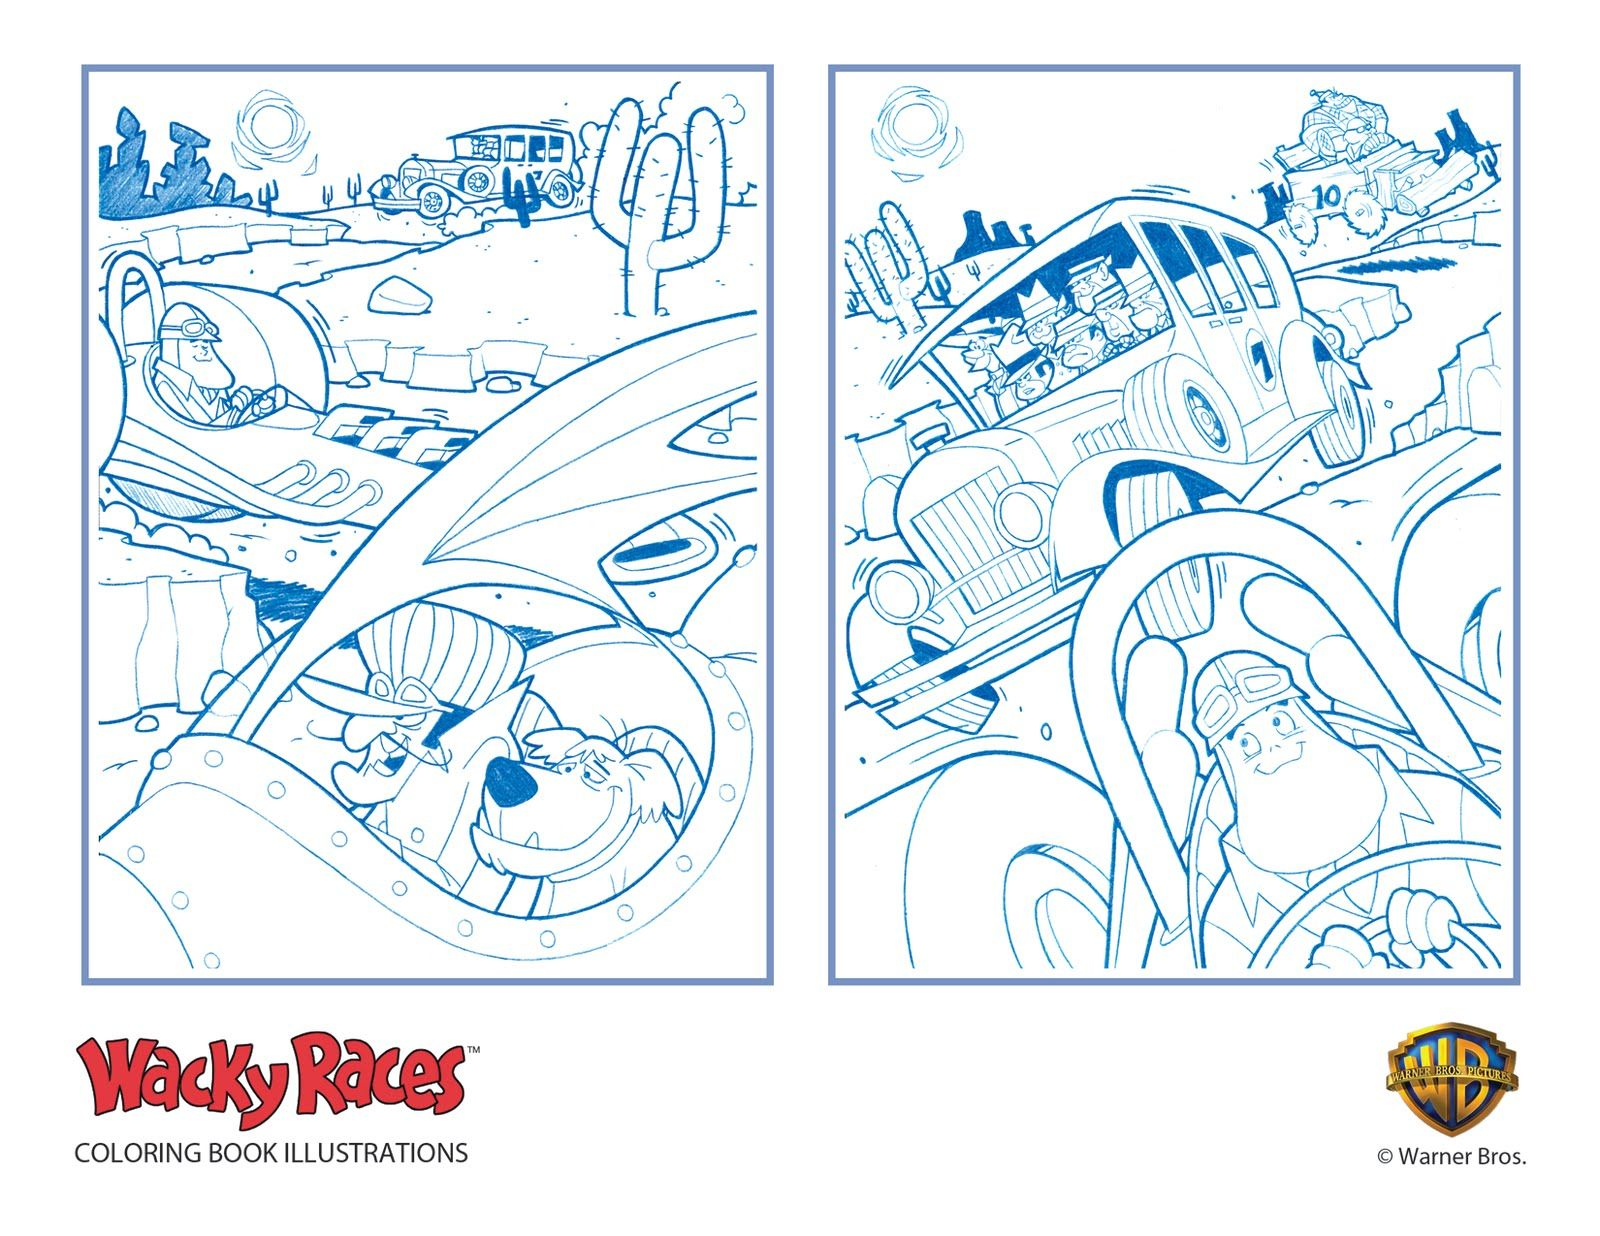 hanna barbera coloring pages - photo#16